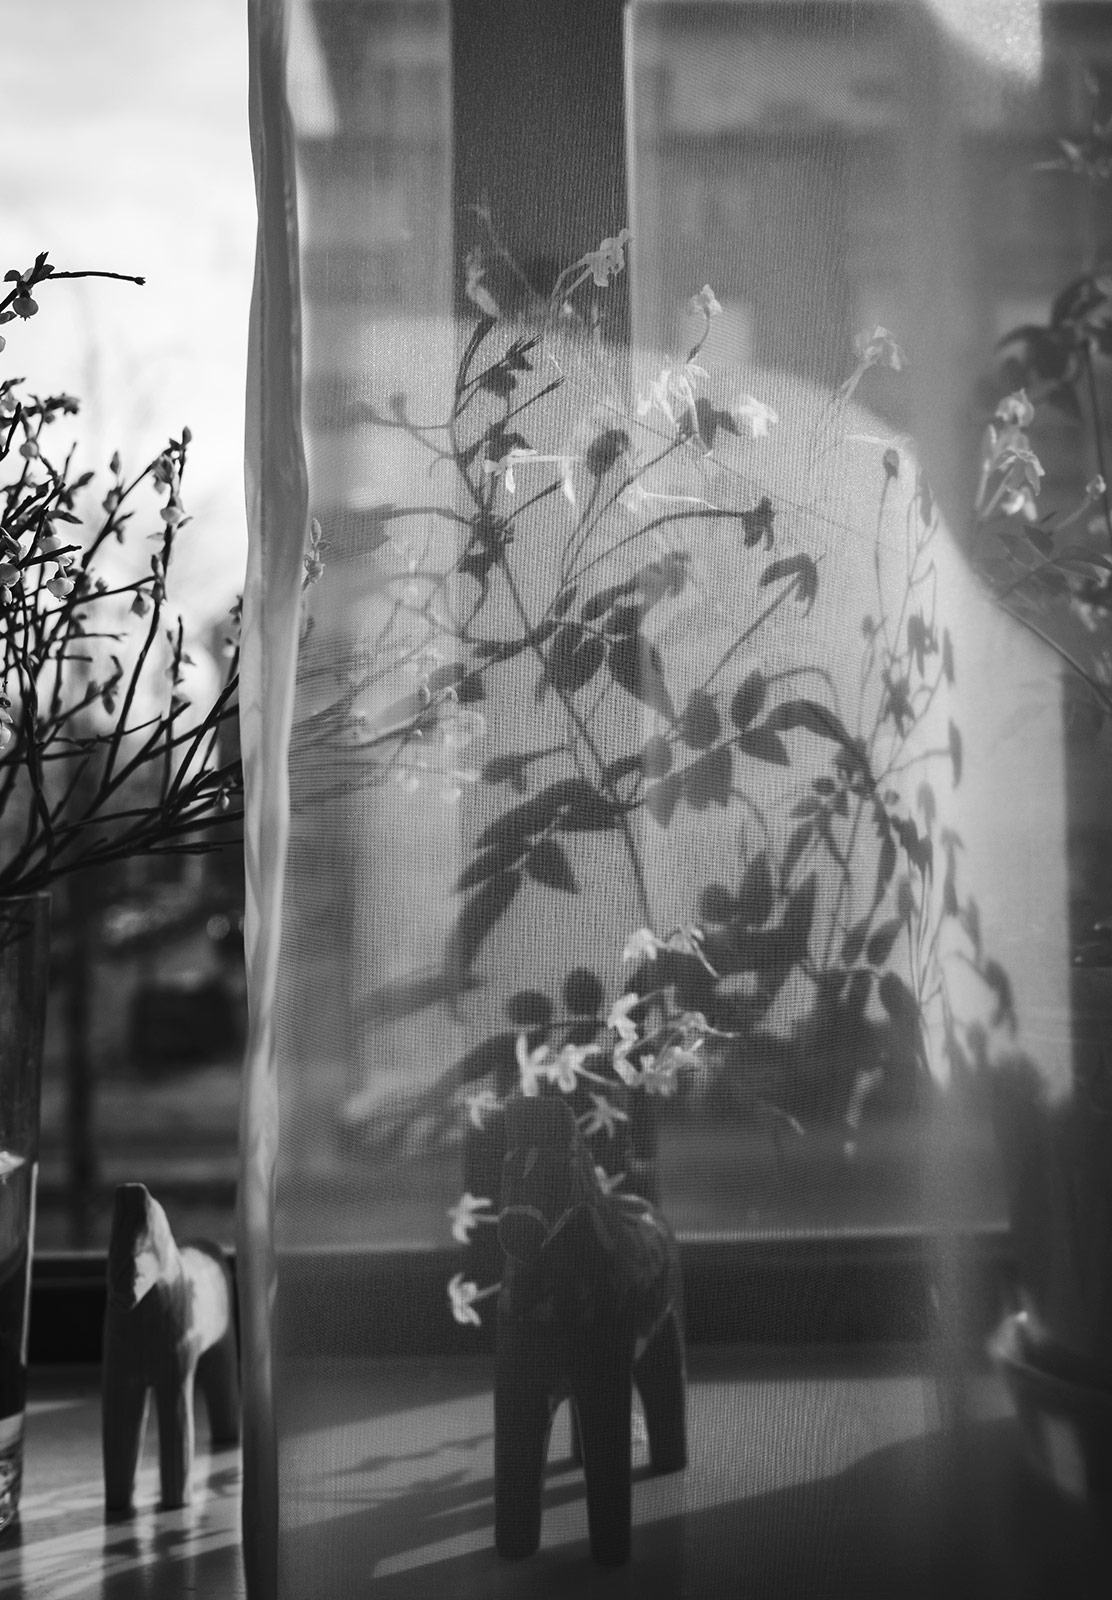 Plant silhouette on curtain